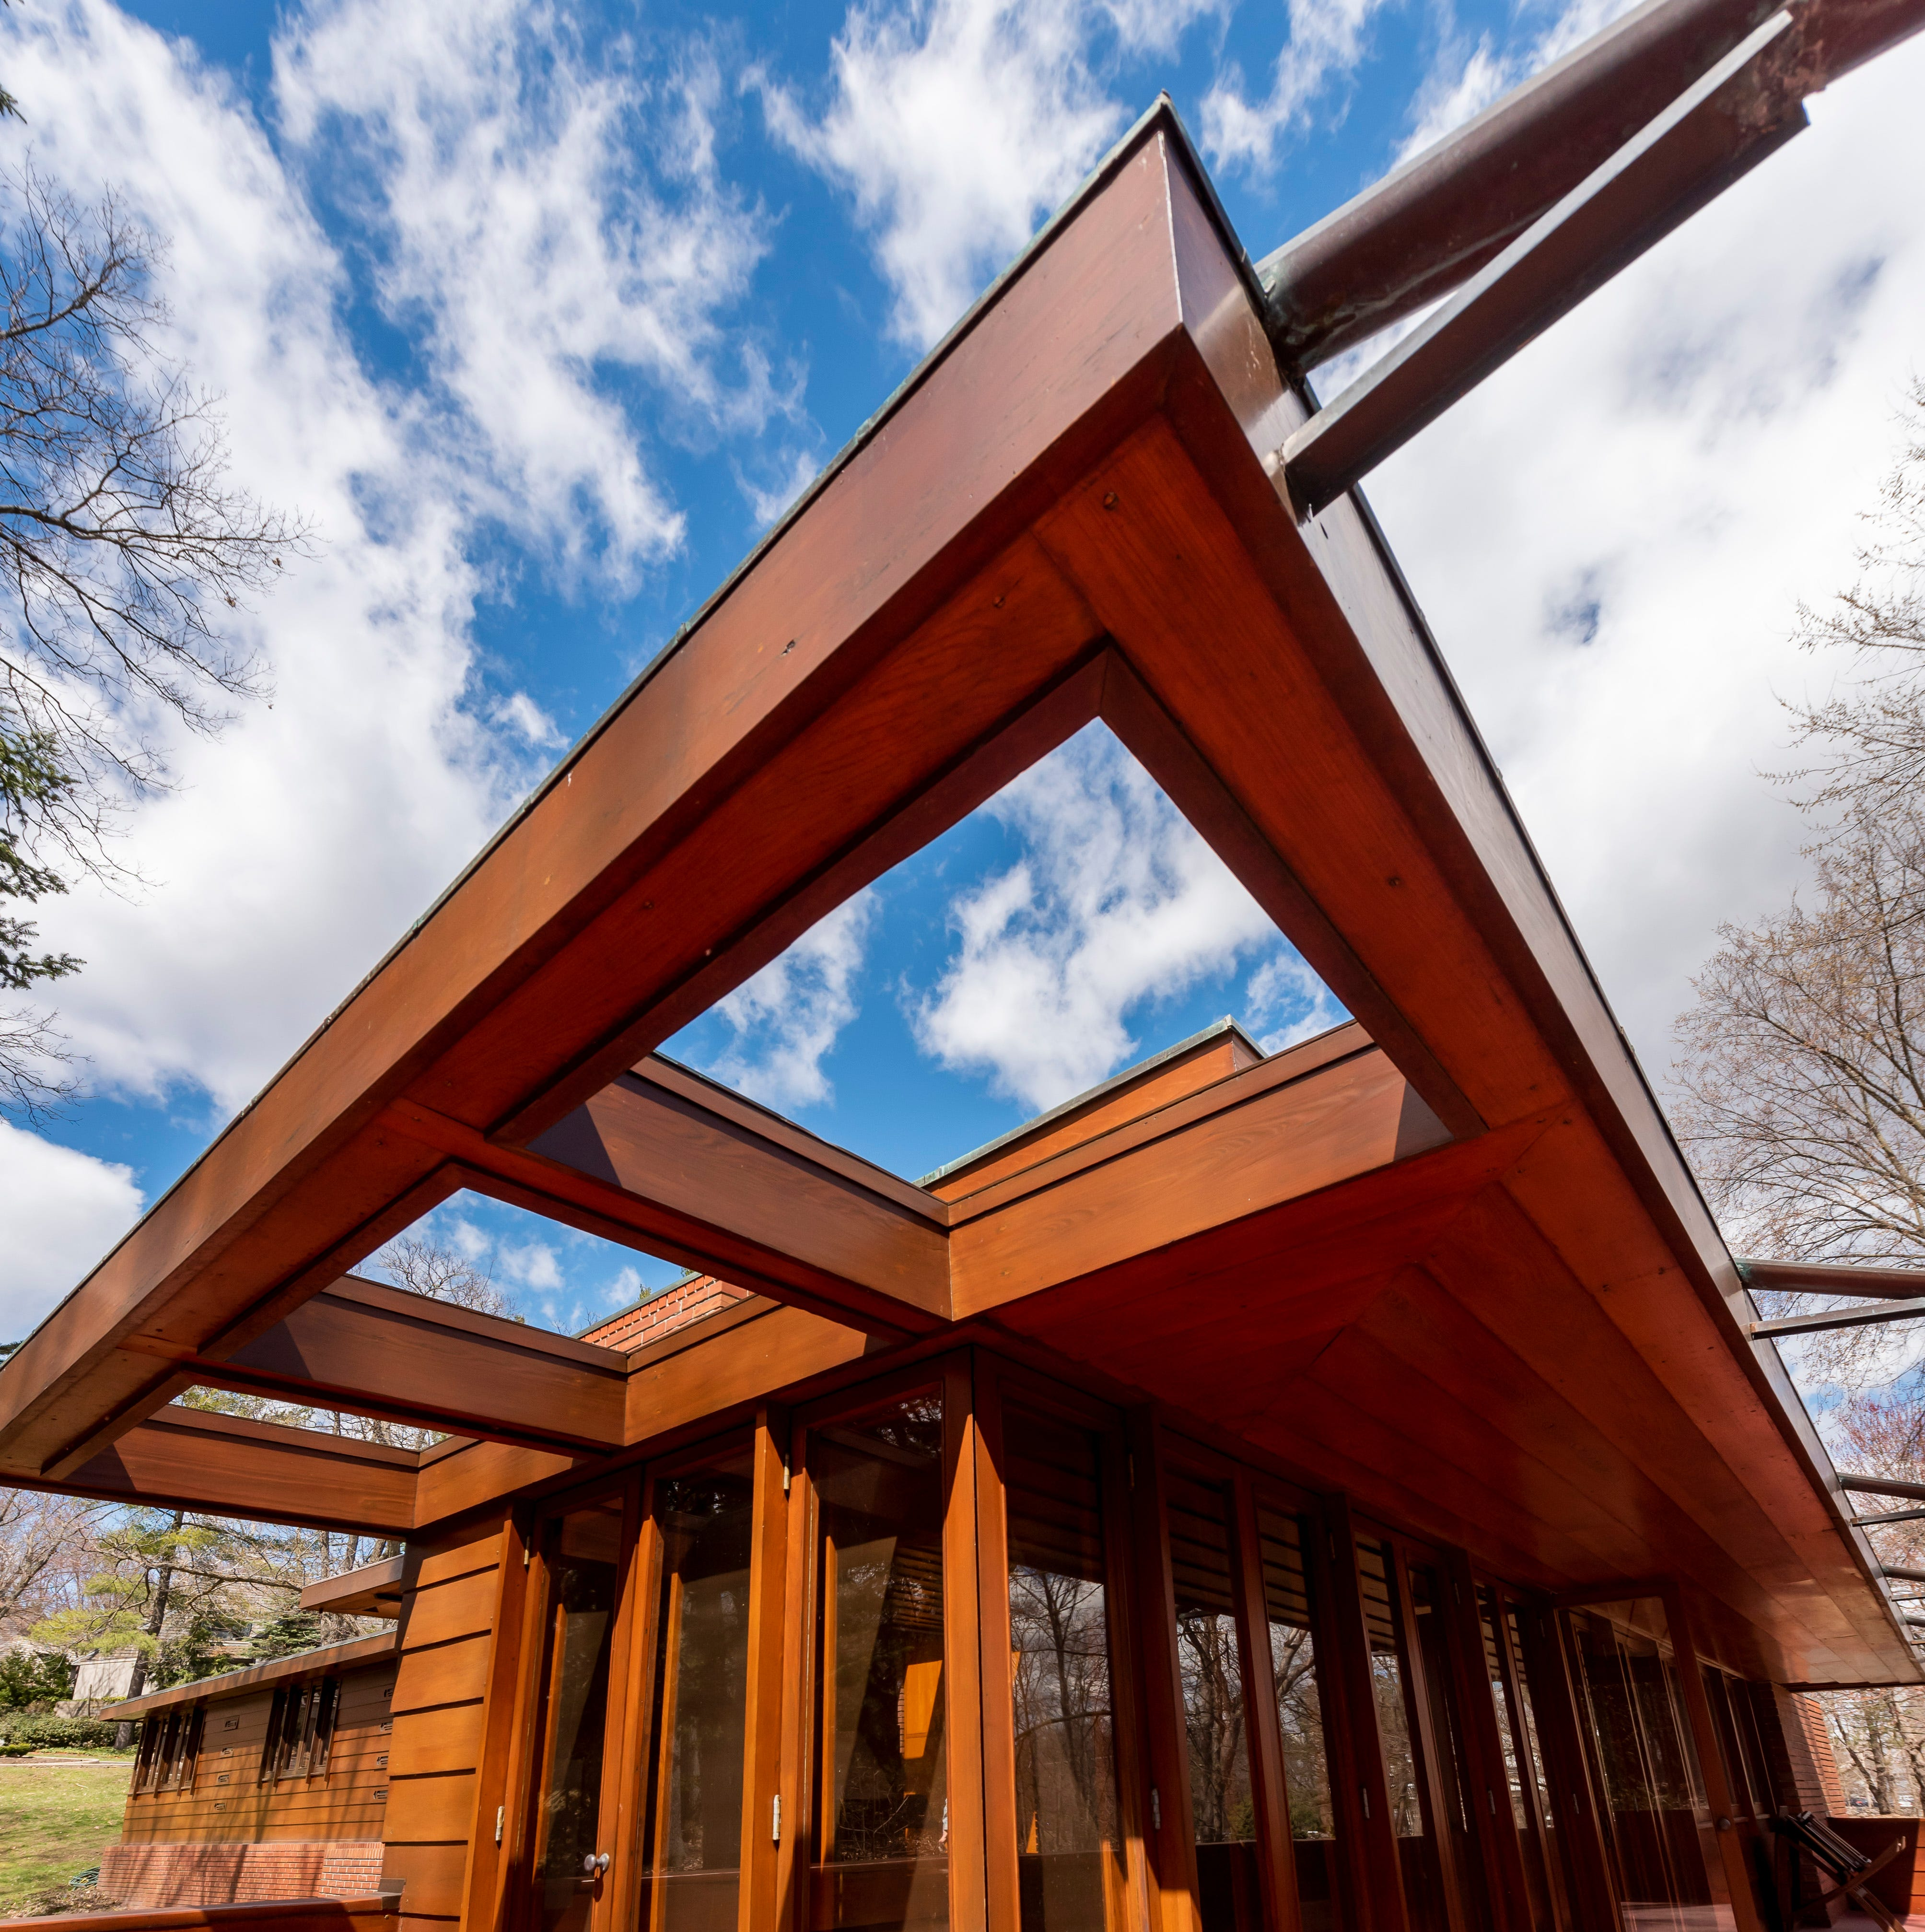 Affleck House designed by Frank Lloyd Wright reopens for tours in May